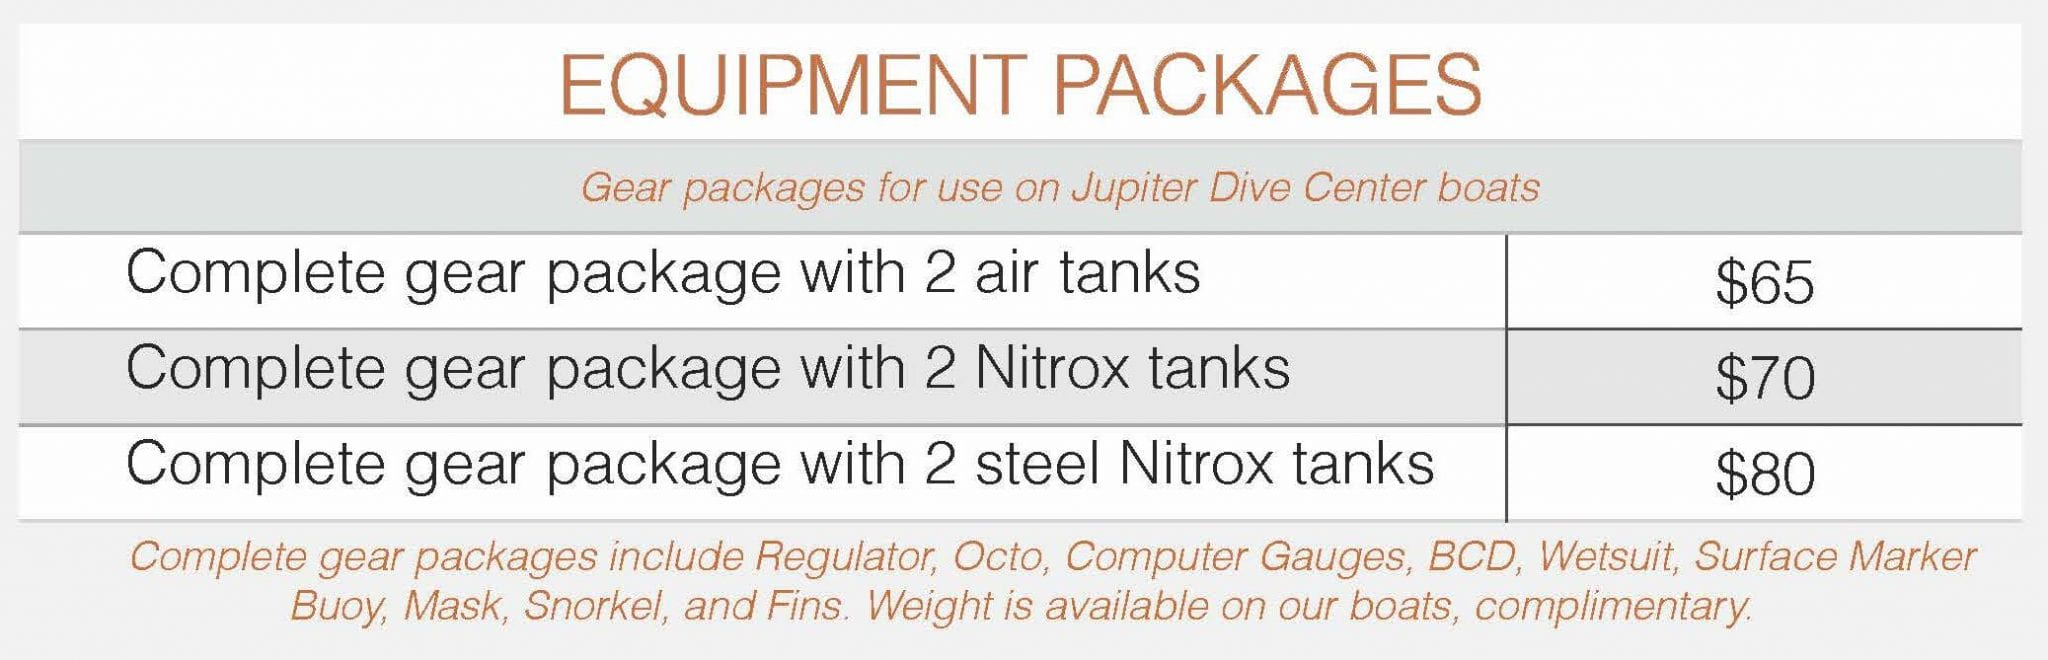 JDC Equipment Packages Pricing Table